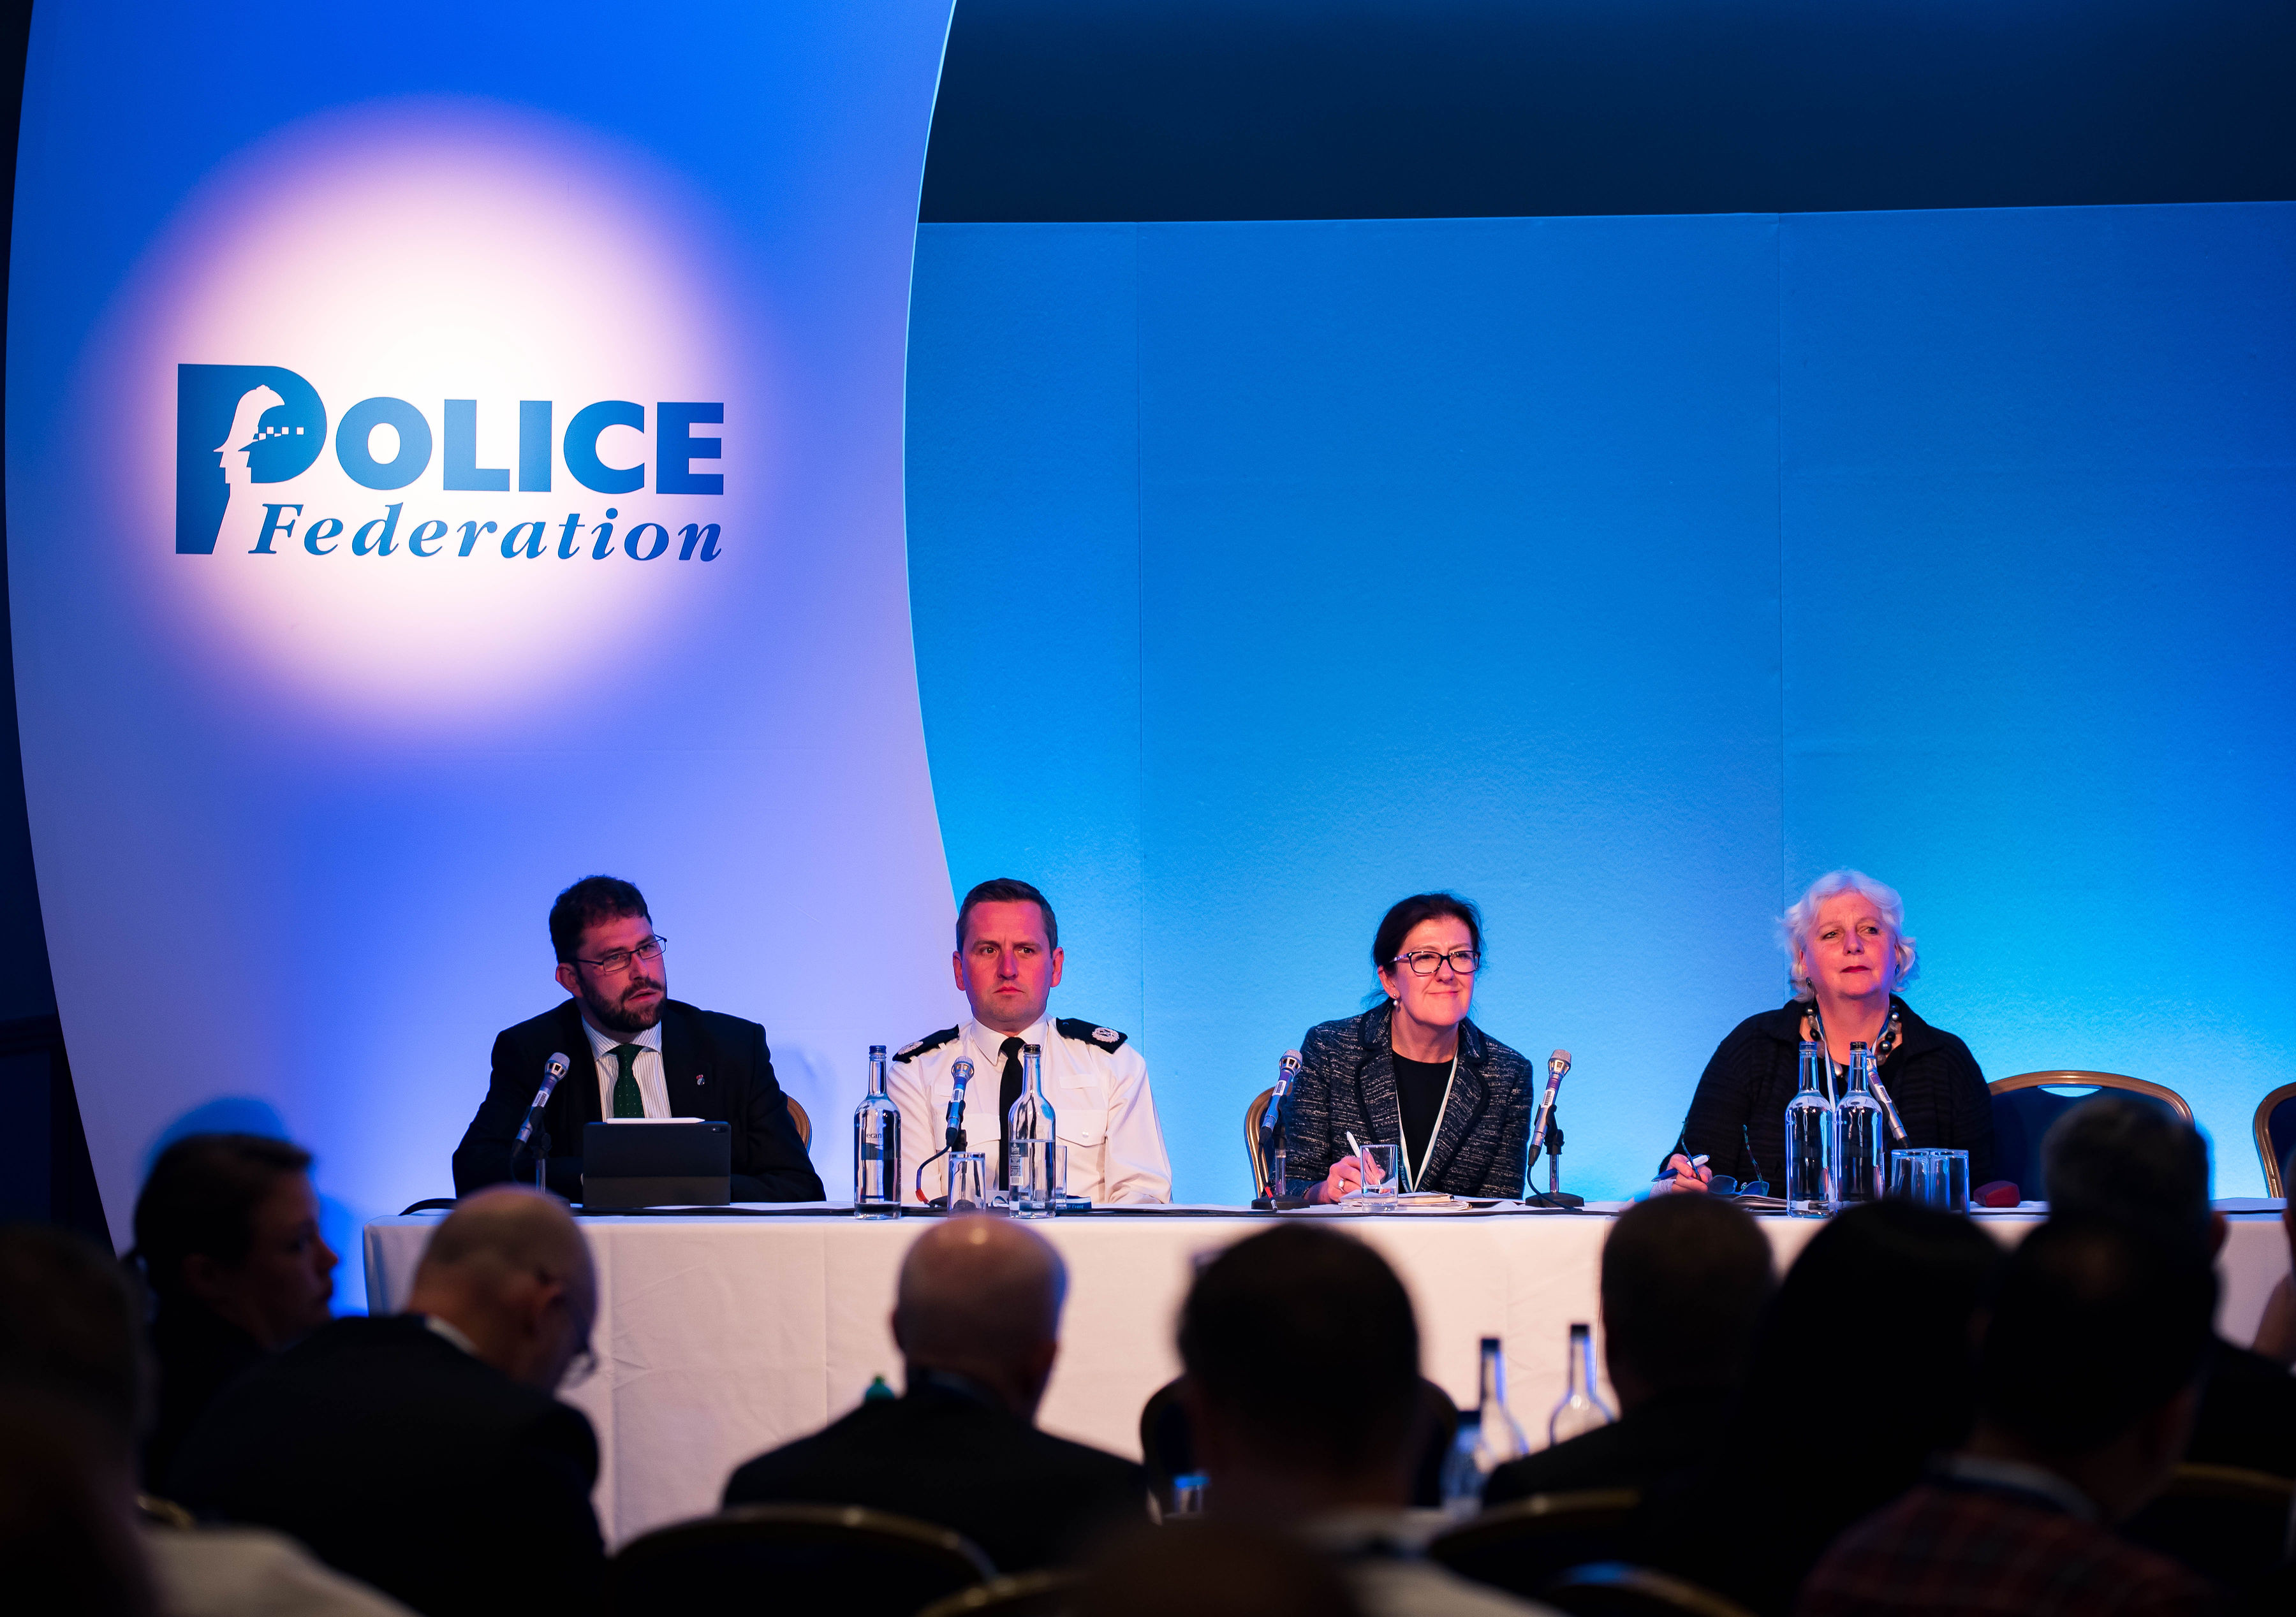 Panel session in our work with the Independent Advisory Panel on Deaths in Custody